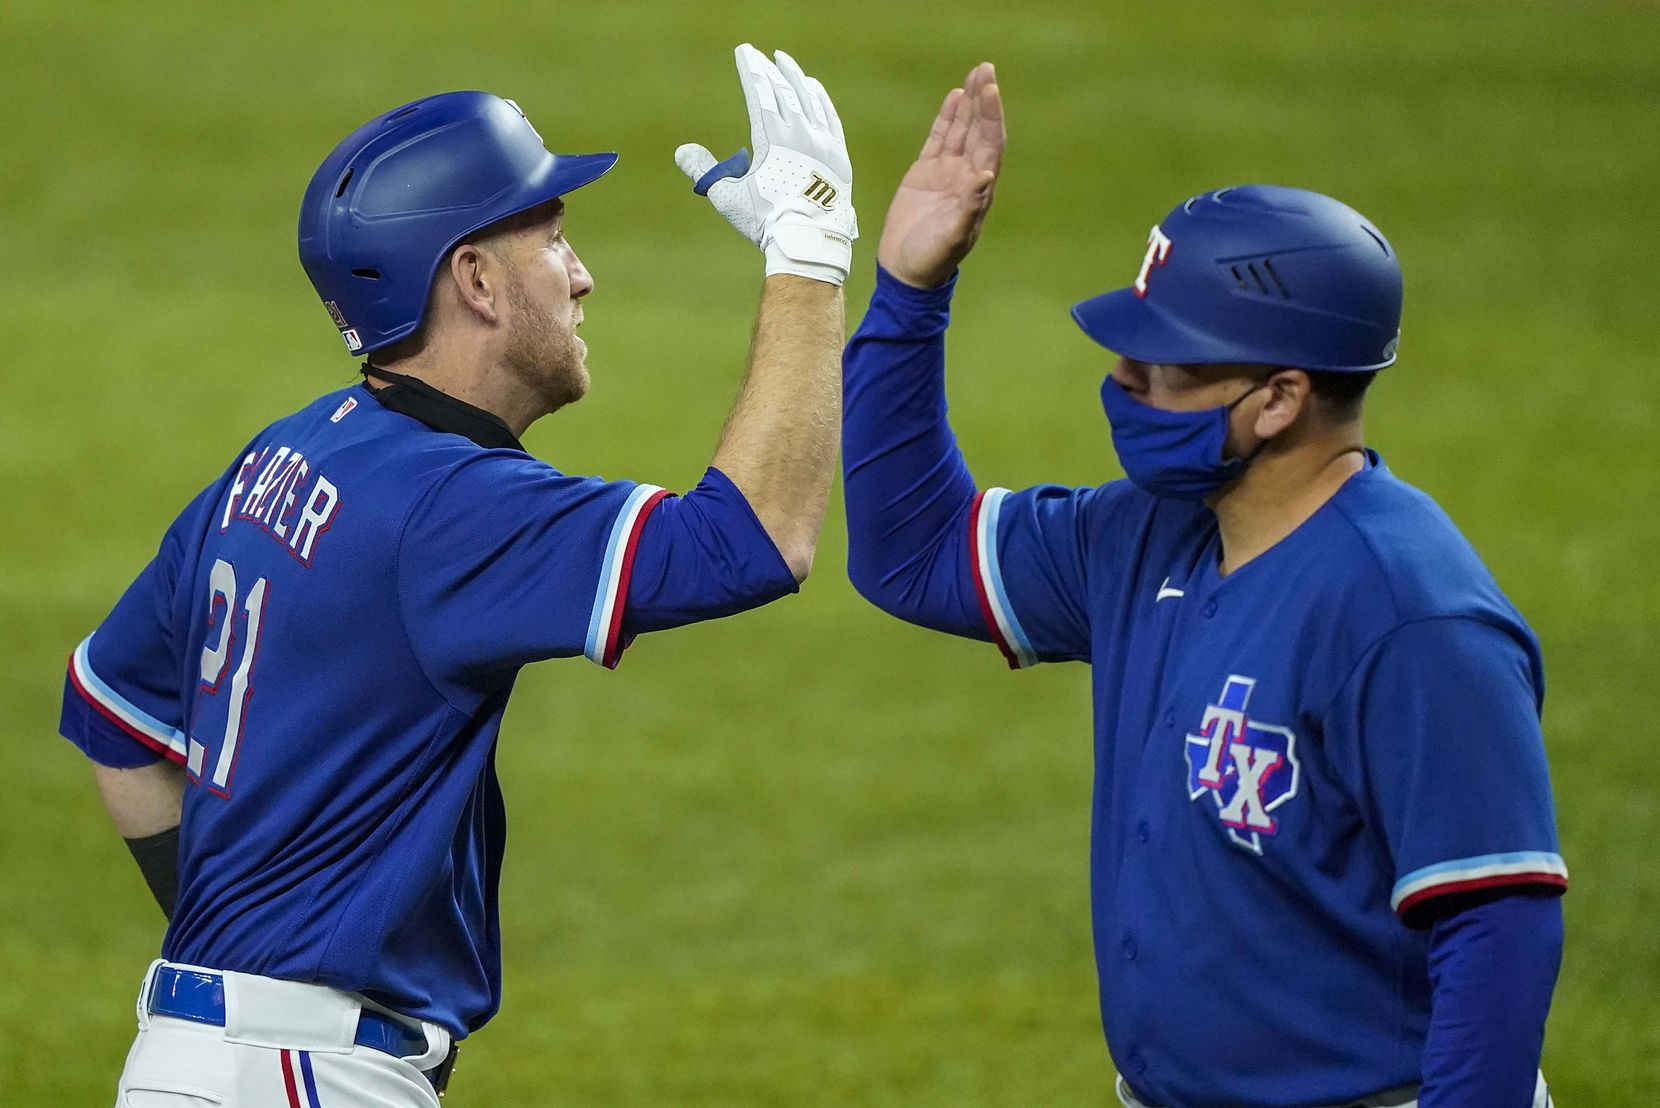 Texas Rangers first baseman Todd Frazier celebrates with coach Hector Ortiz after hitting a 3-run home run during the fifth inning of an exhibition game against the Colorado Rockies at Globe Life Field on Wednesday, July 22, 2020.